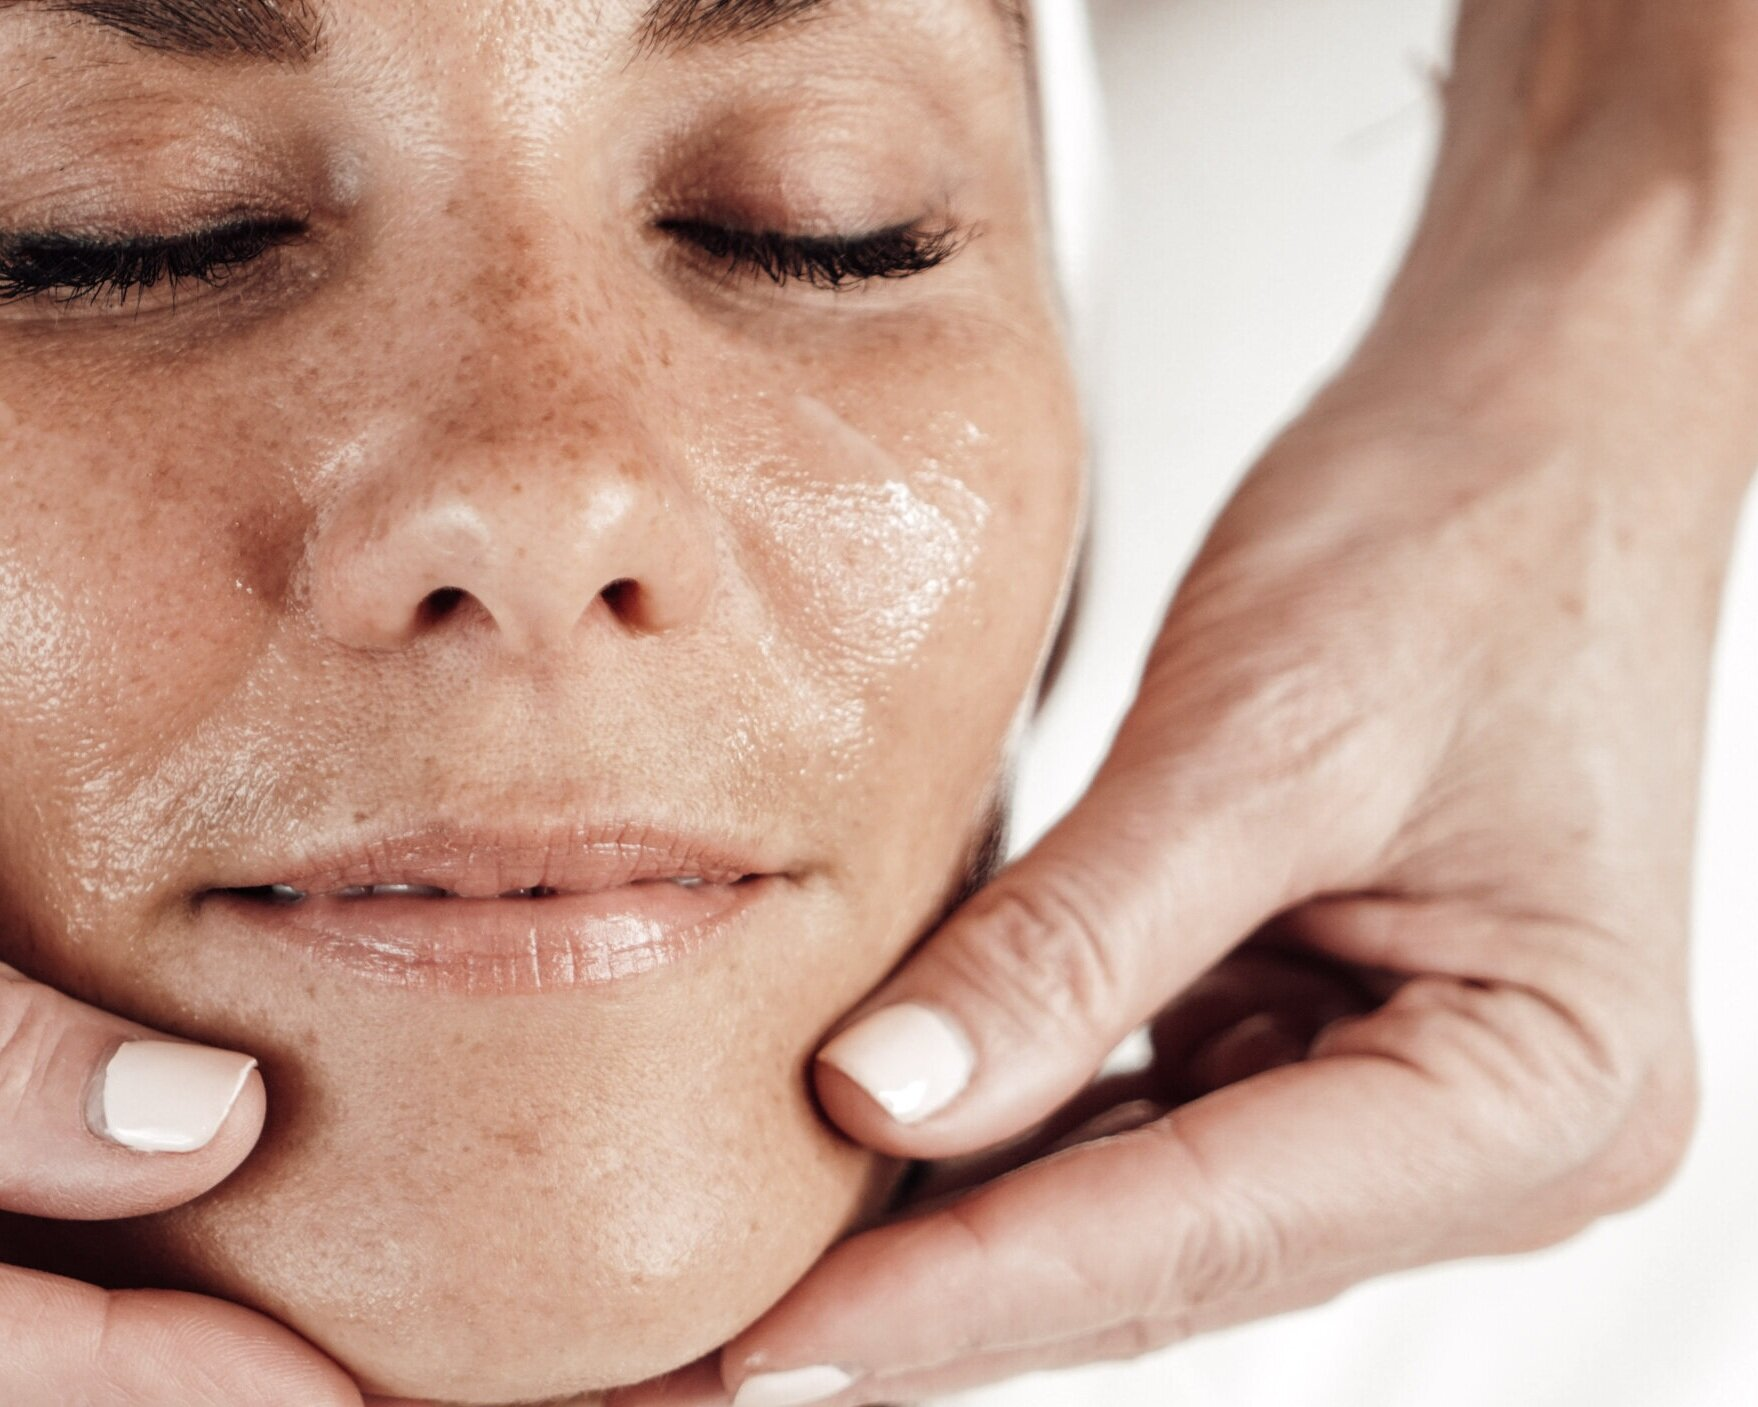 - Offering the best in non-surgical restoration, enhancements, and state of the art skin care treatments. Specializing in natural injection techniques, we aim to provide a refreshing approach to anti-aging treatments.